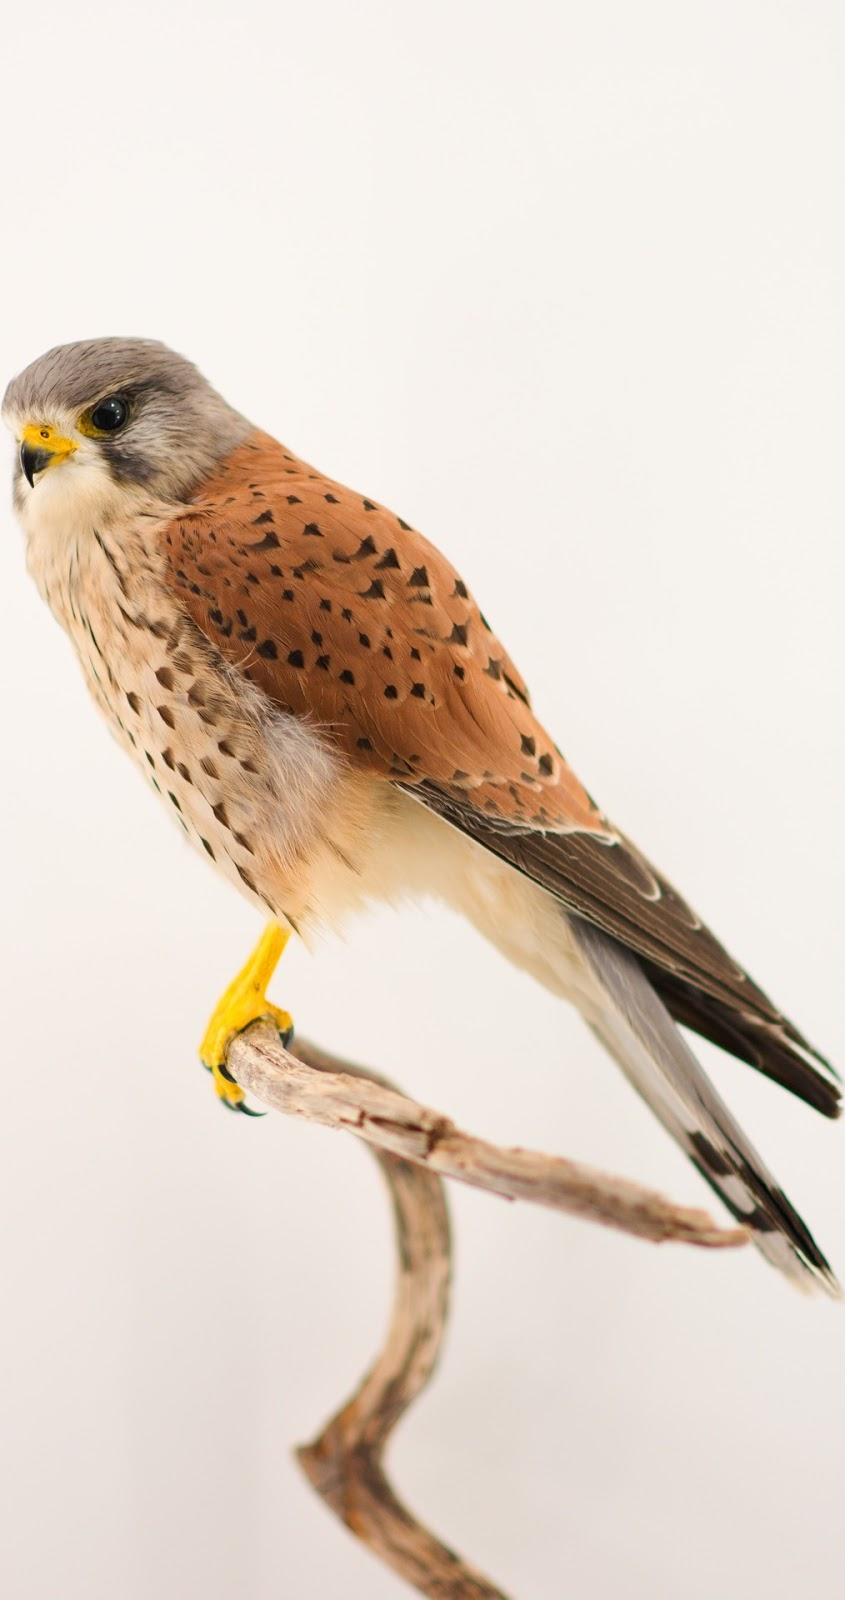 Picture of a kestrel bird.